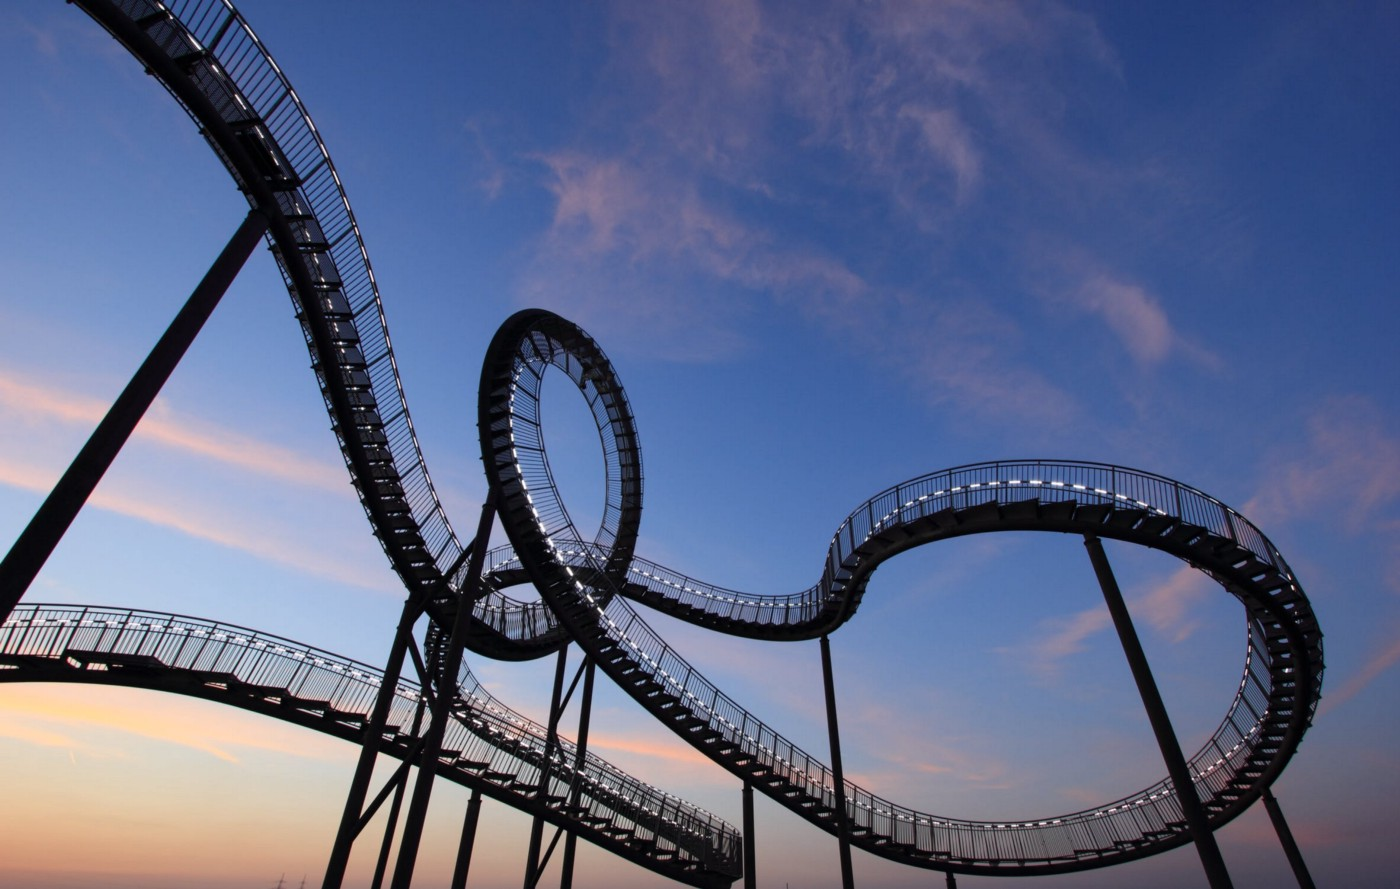 roller coaster representing the grief widowed go through